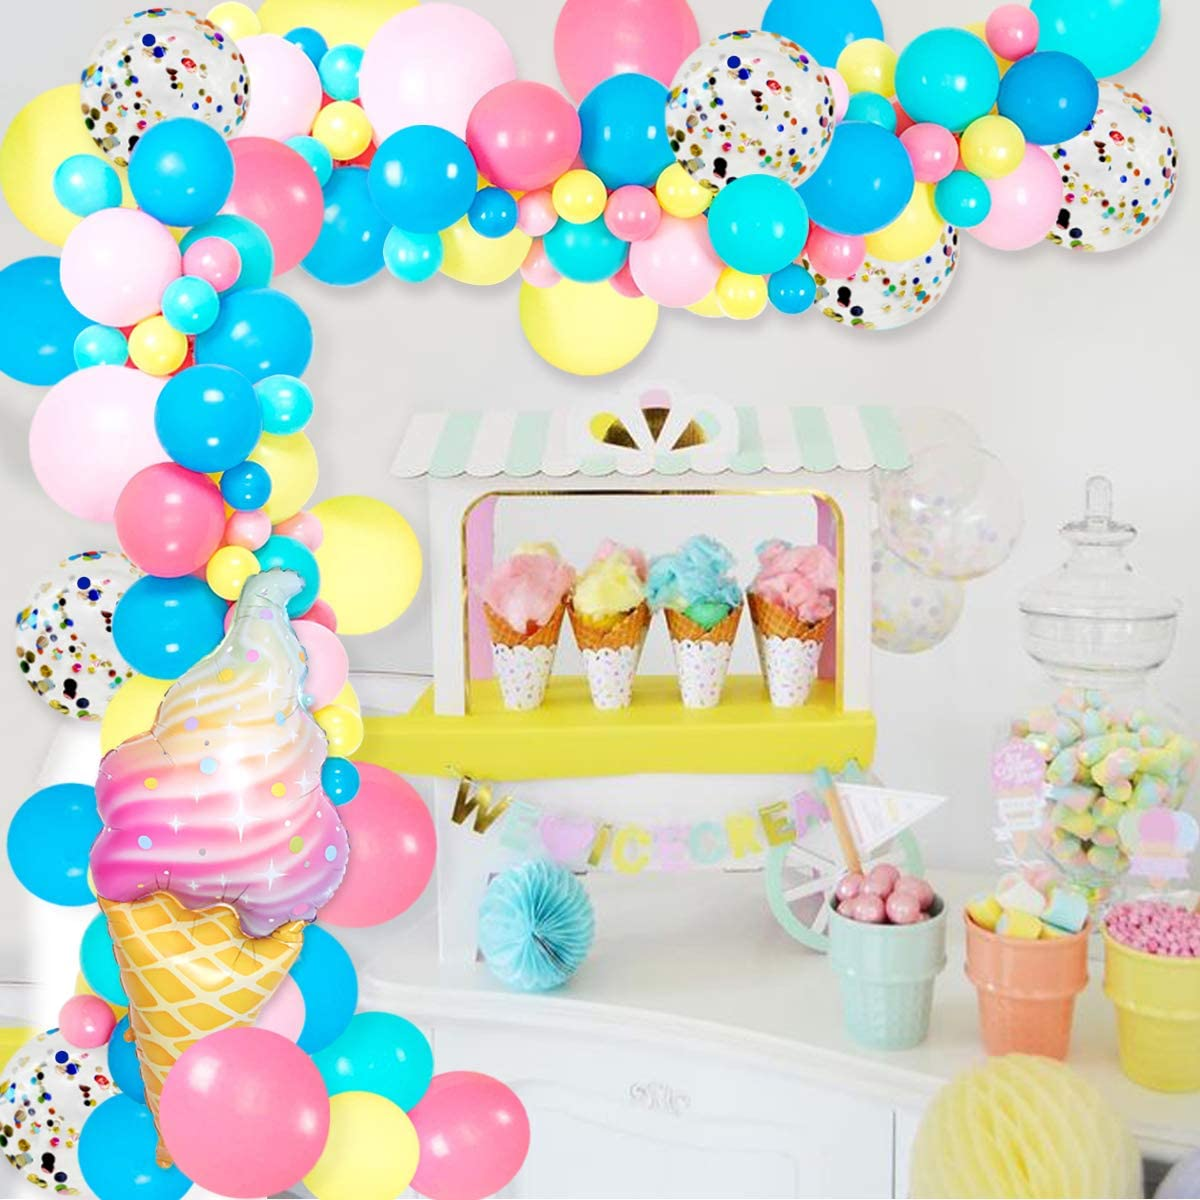 Ice Cream Balloon Garland Arch Kit 110 Pack with Confetti Foil Balloons for Summer Candy Sweet One Two Birthday Party Baby Shower